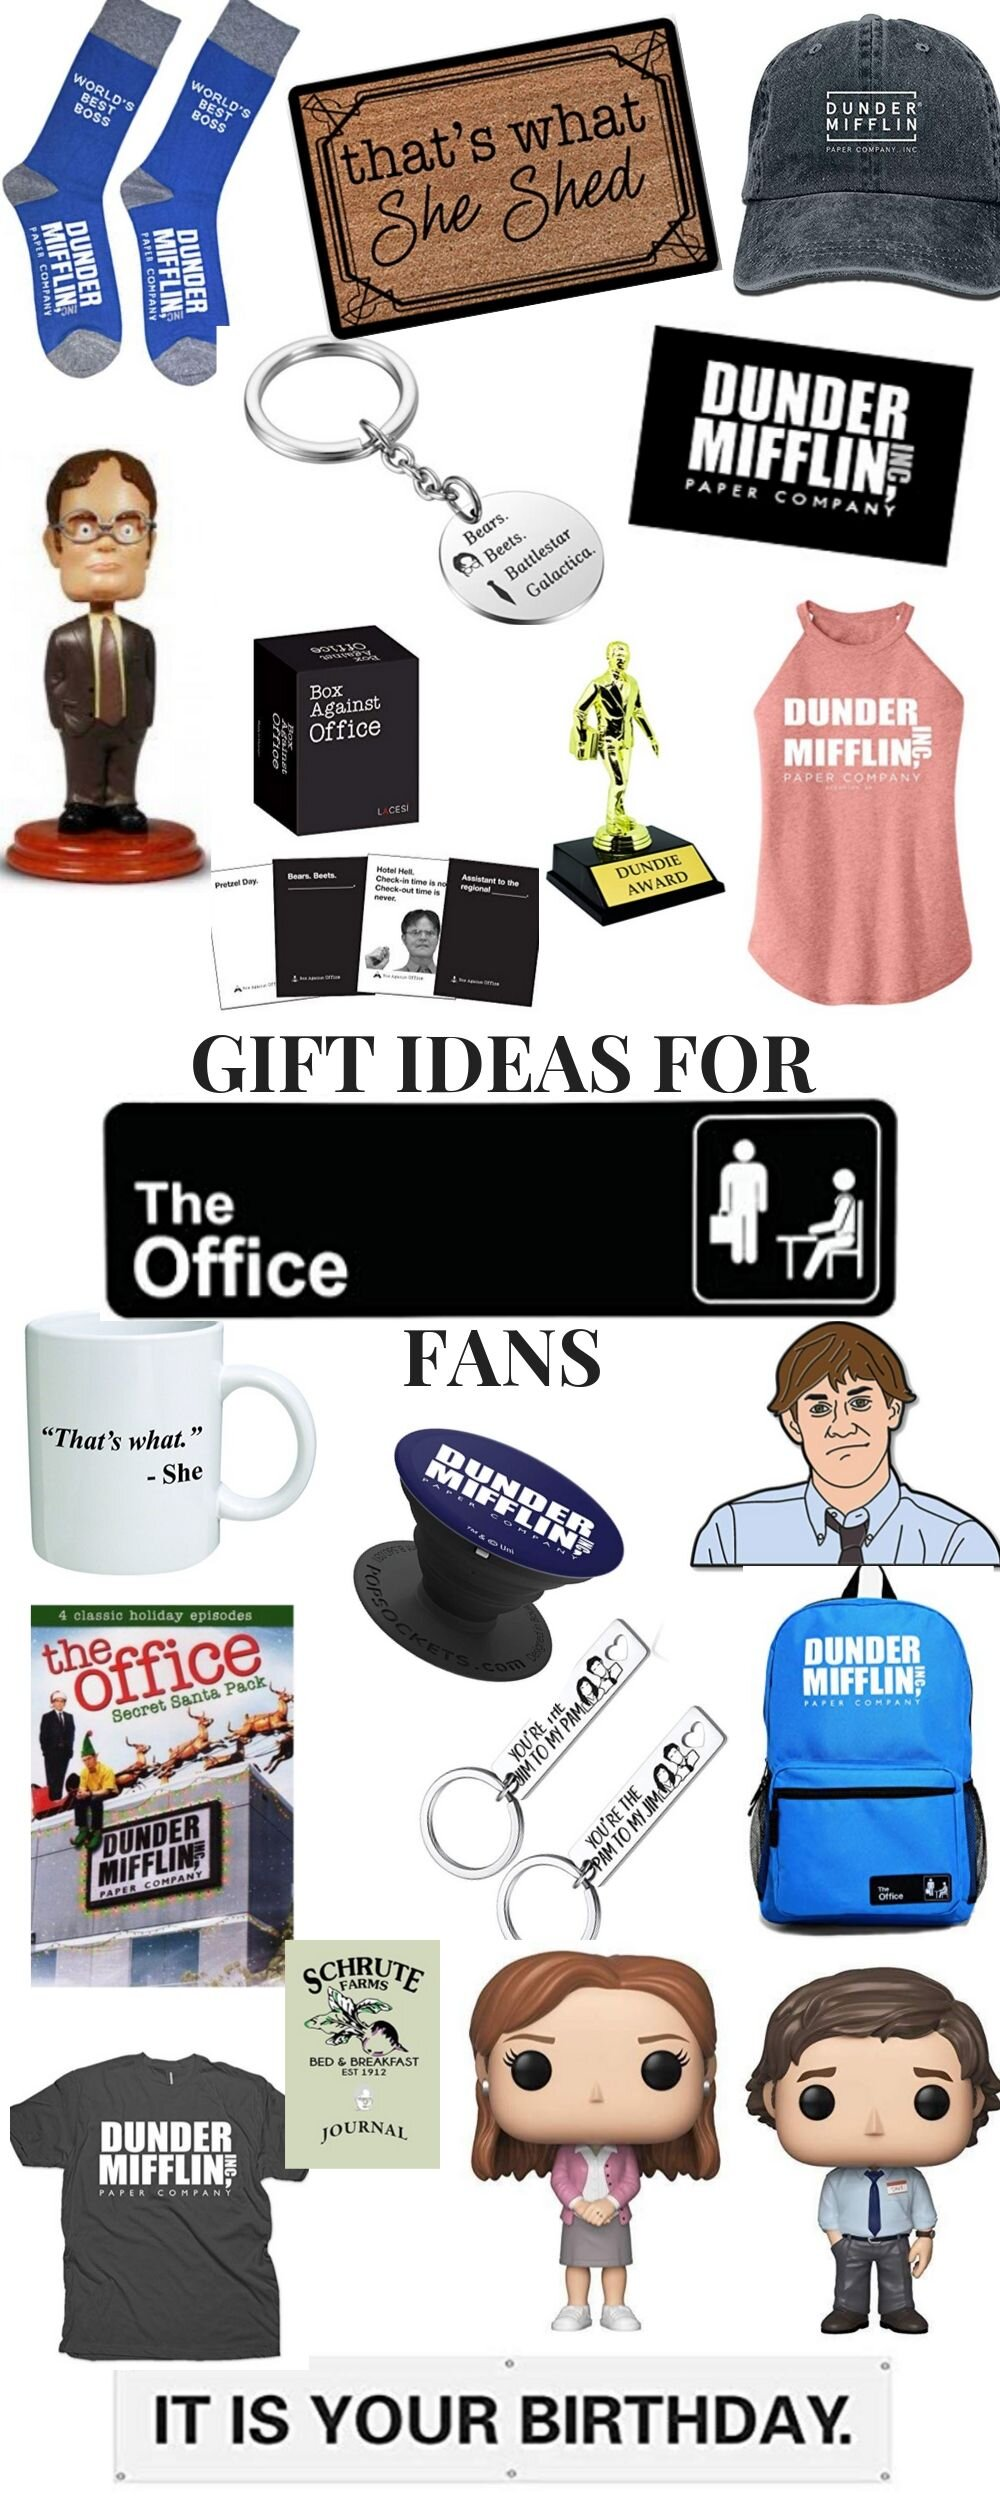 The Office TV Show Gift Guide. Great gift ideas for the Office fans on your list.